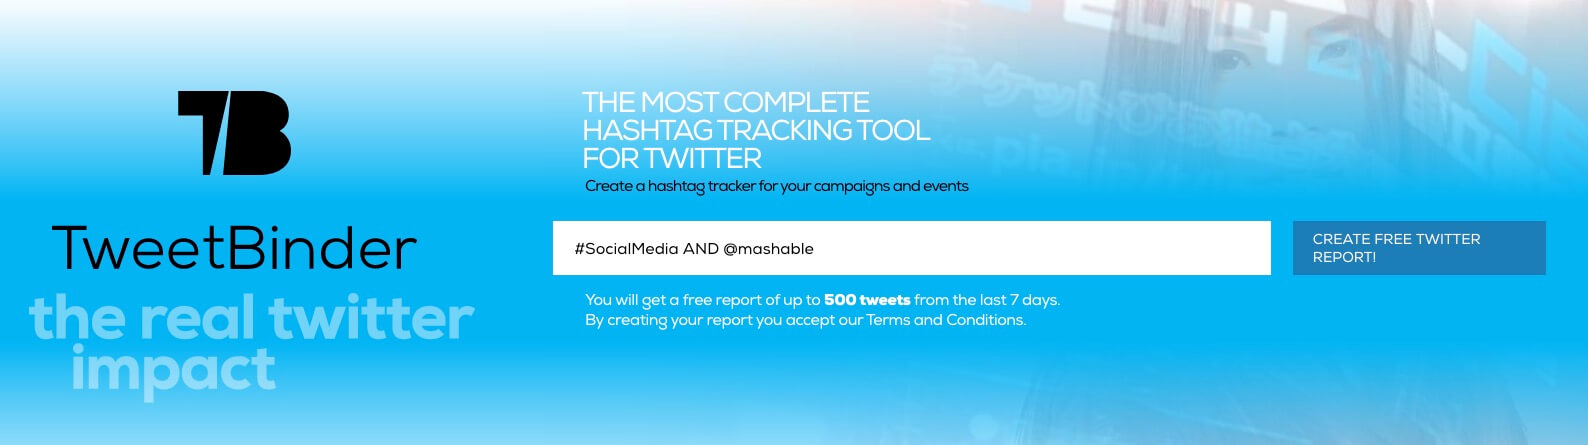 Twitter advanced search for mashable and socialmedia